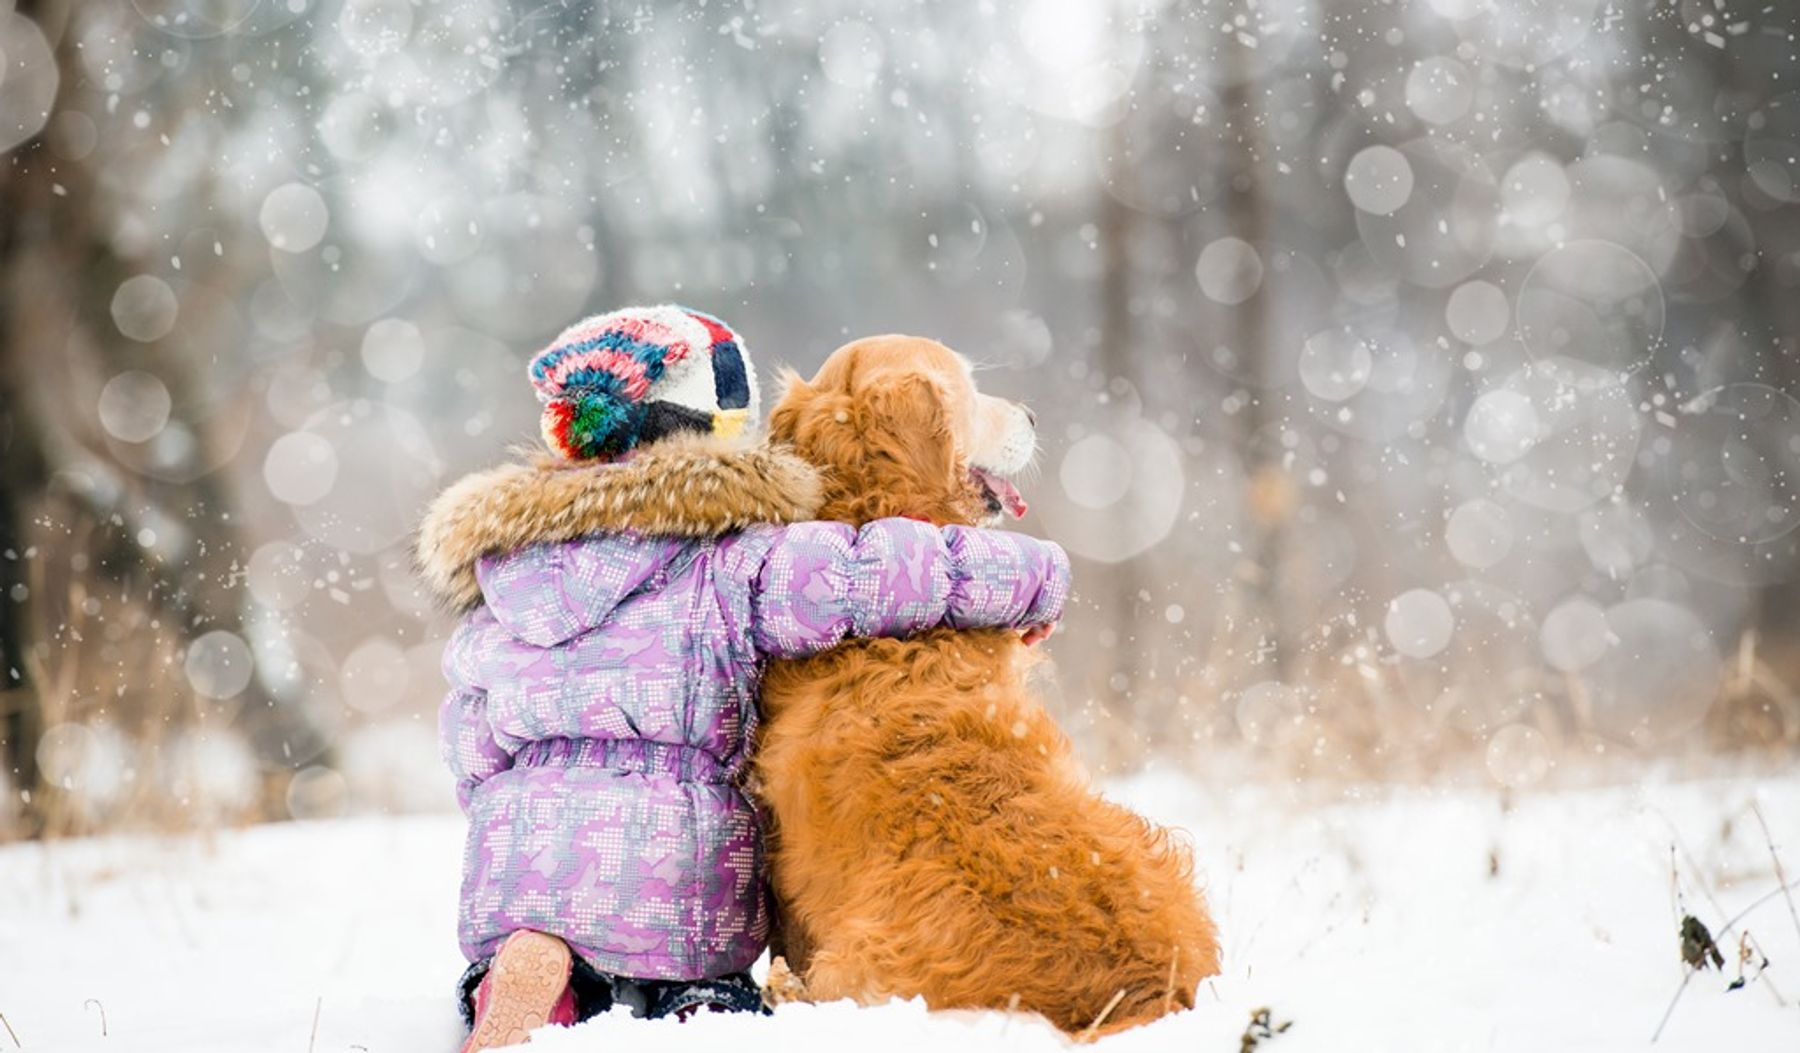 You Think The World Is Cruel Mean And Harsh Take A Look: 5 Great Tips For Photographing Your Children & Their Pets